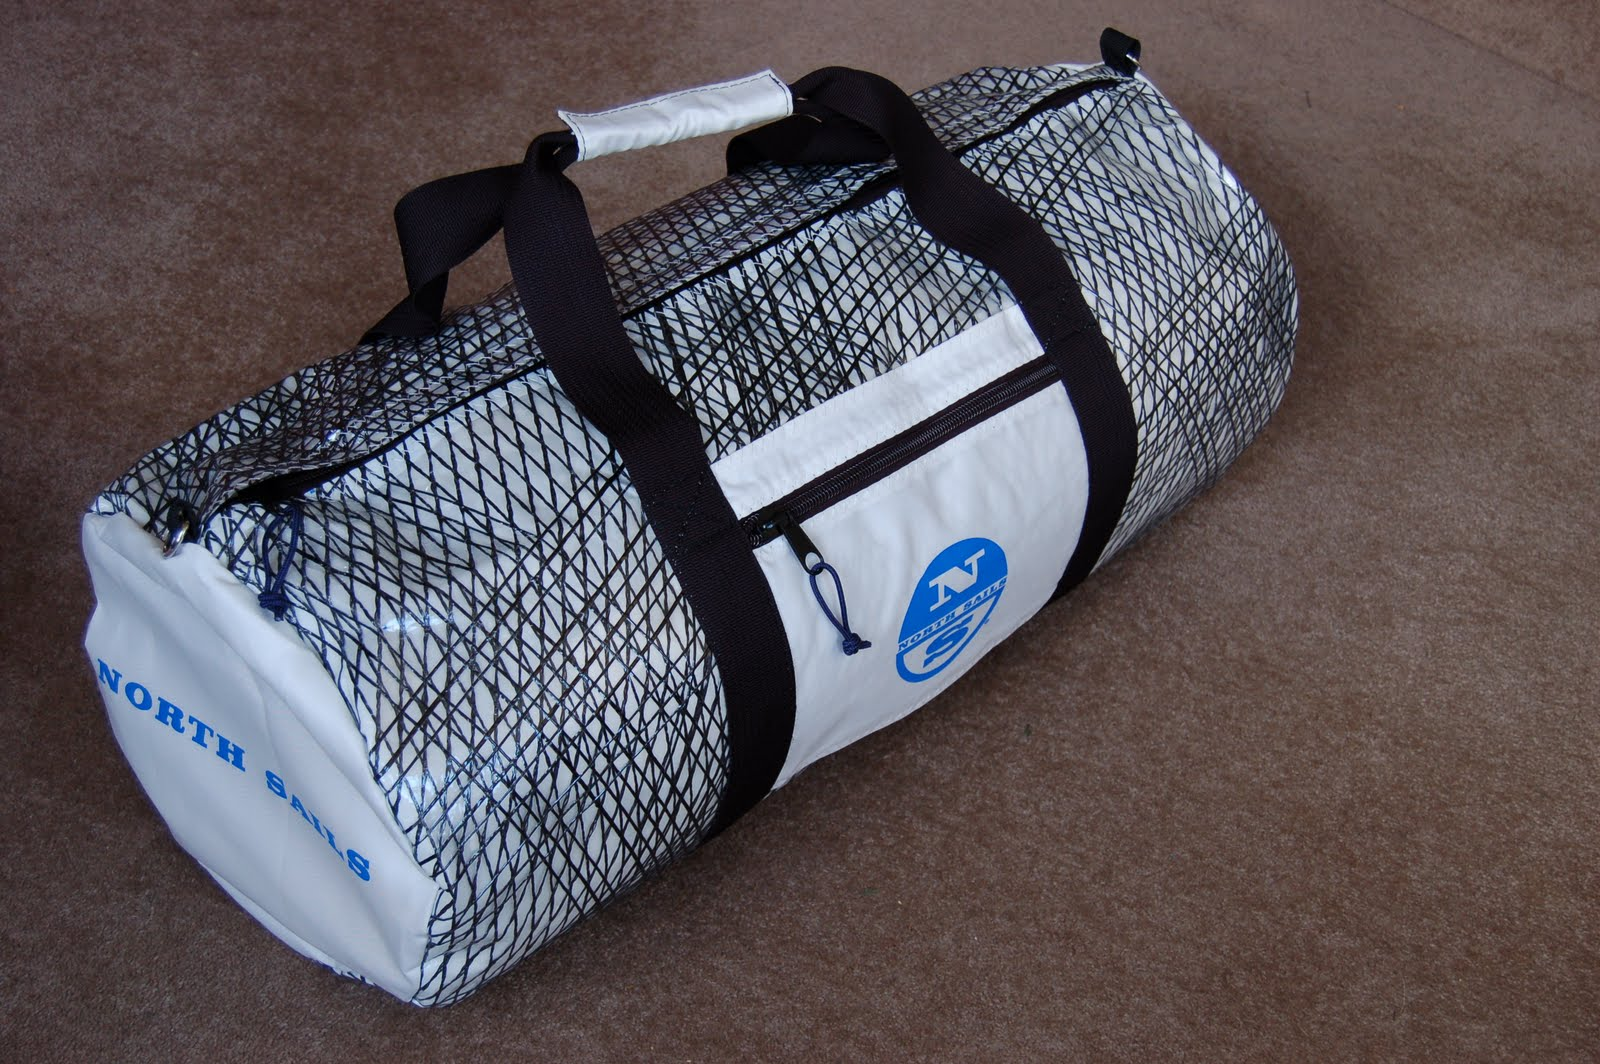 North Sails Crew Bag